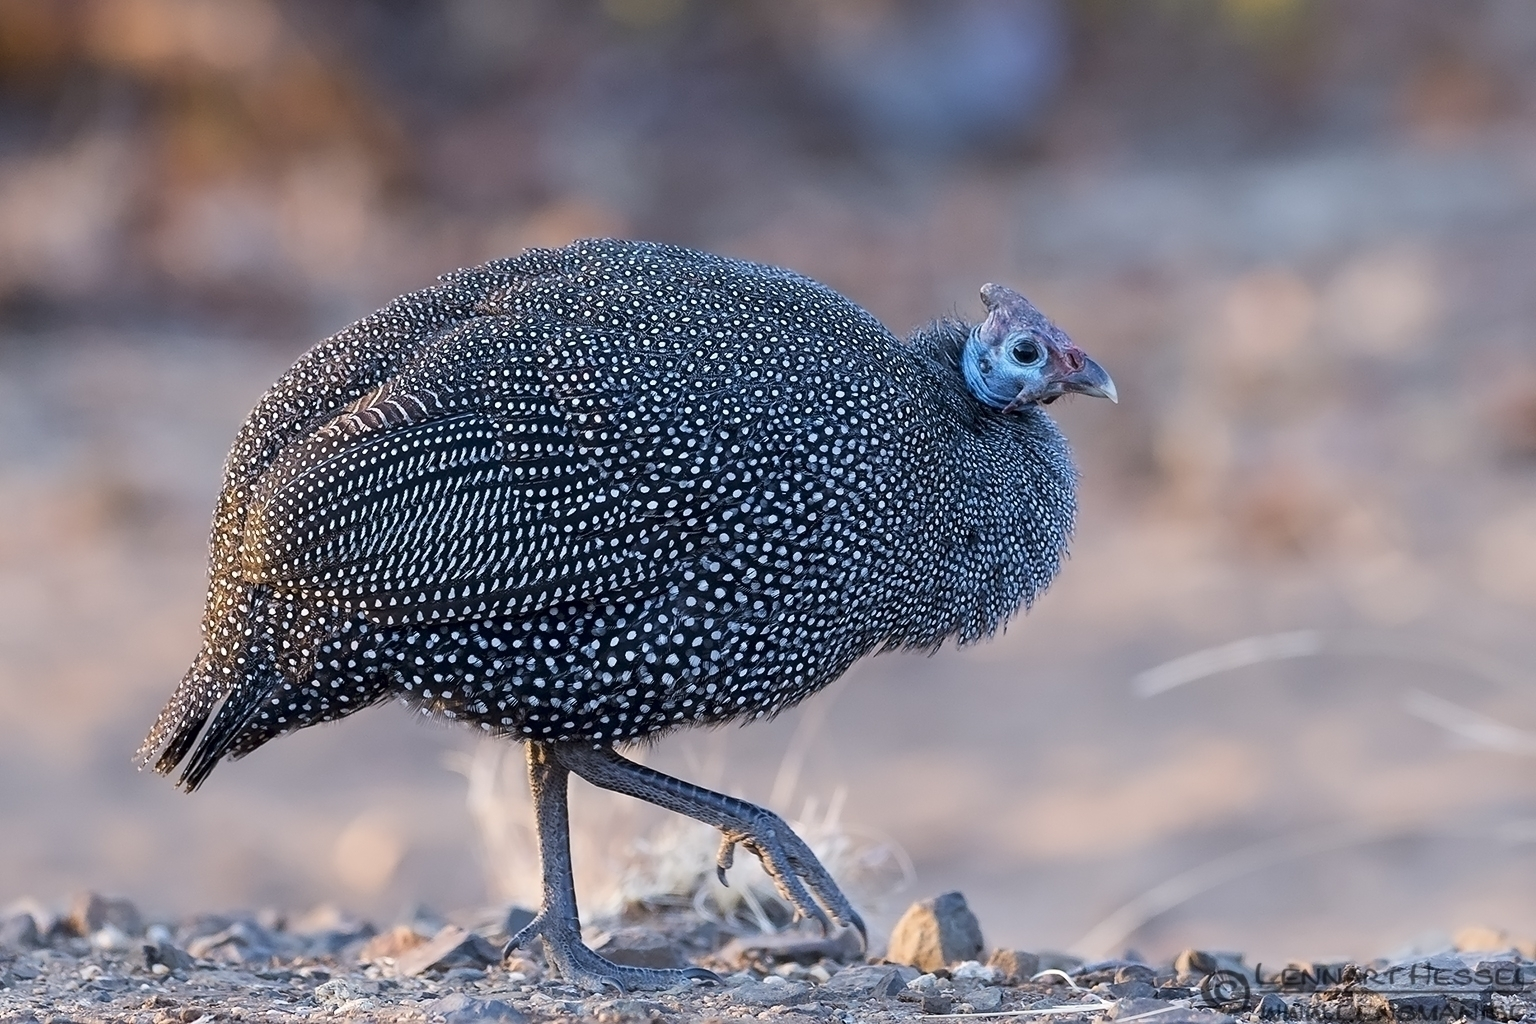 Helmeted Guineafowl Kruger National Park South Africa